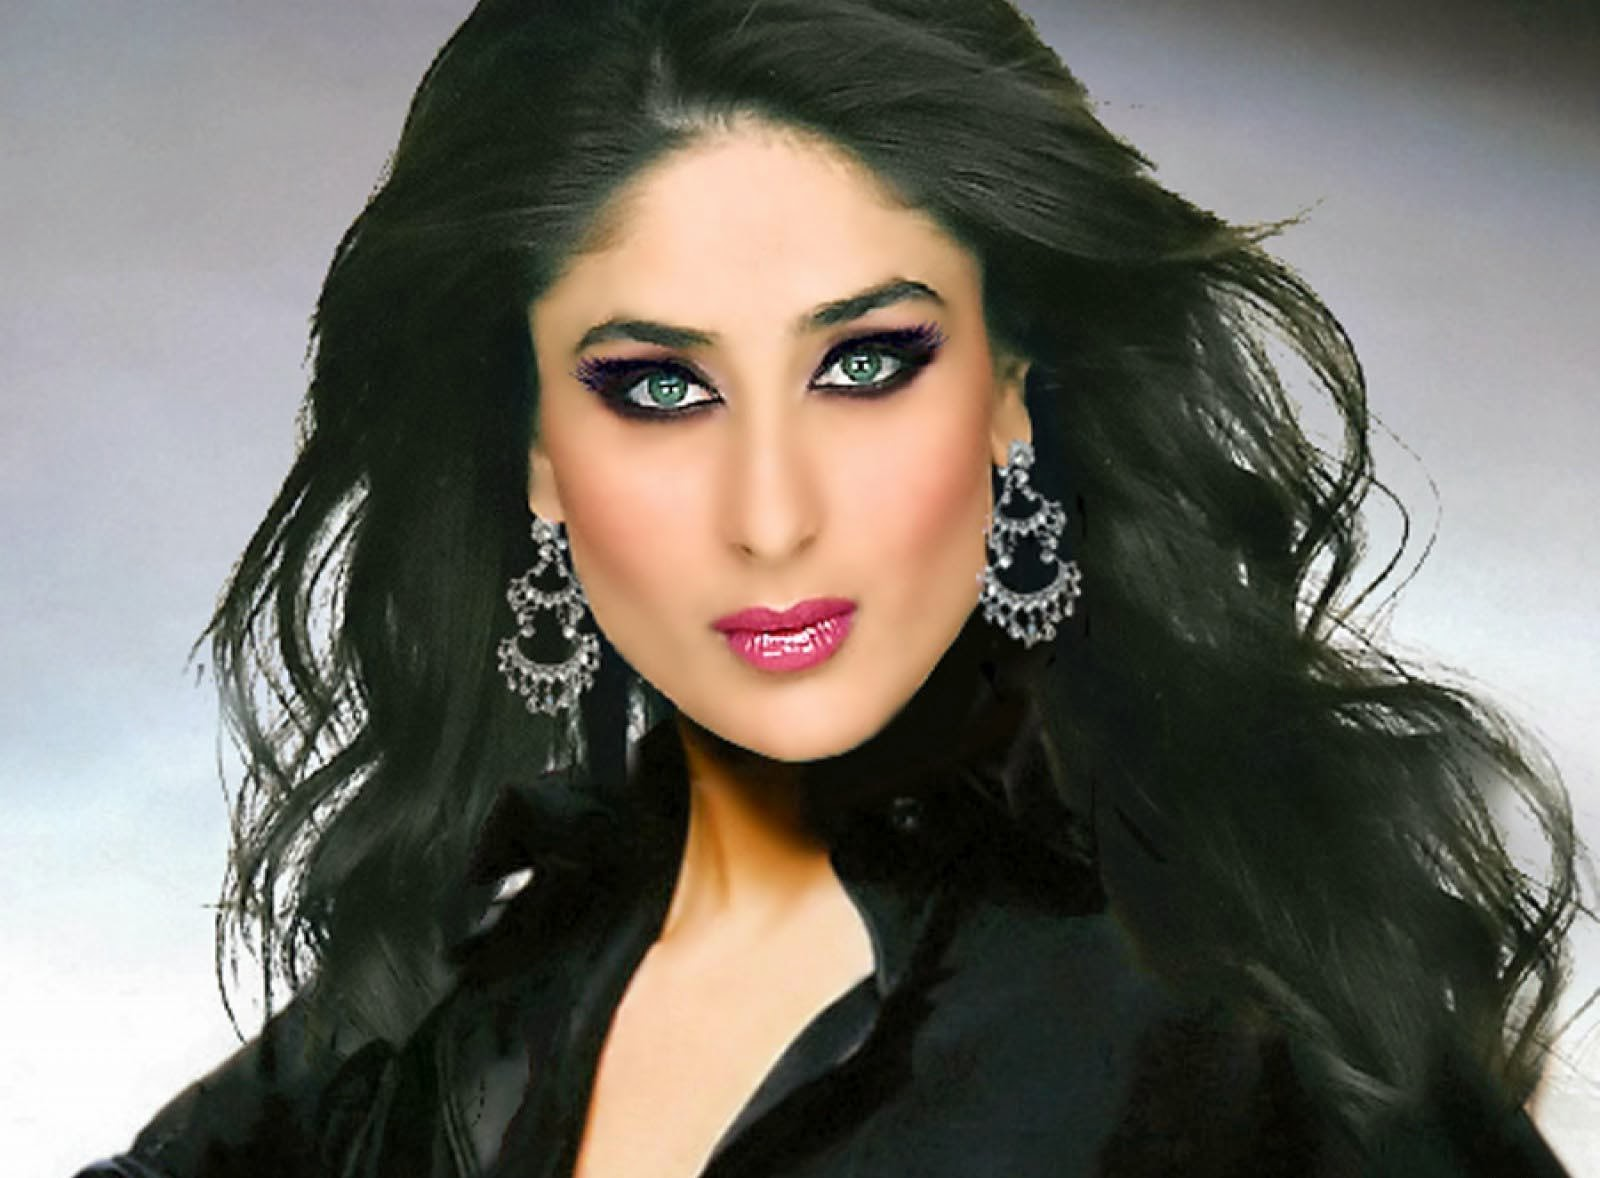 Bollywood Actress Wallpapers Hd Free Download 49 Find: Latest HD Hot Pictures Of Kareena Kapoor